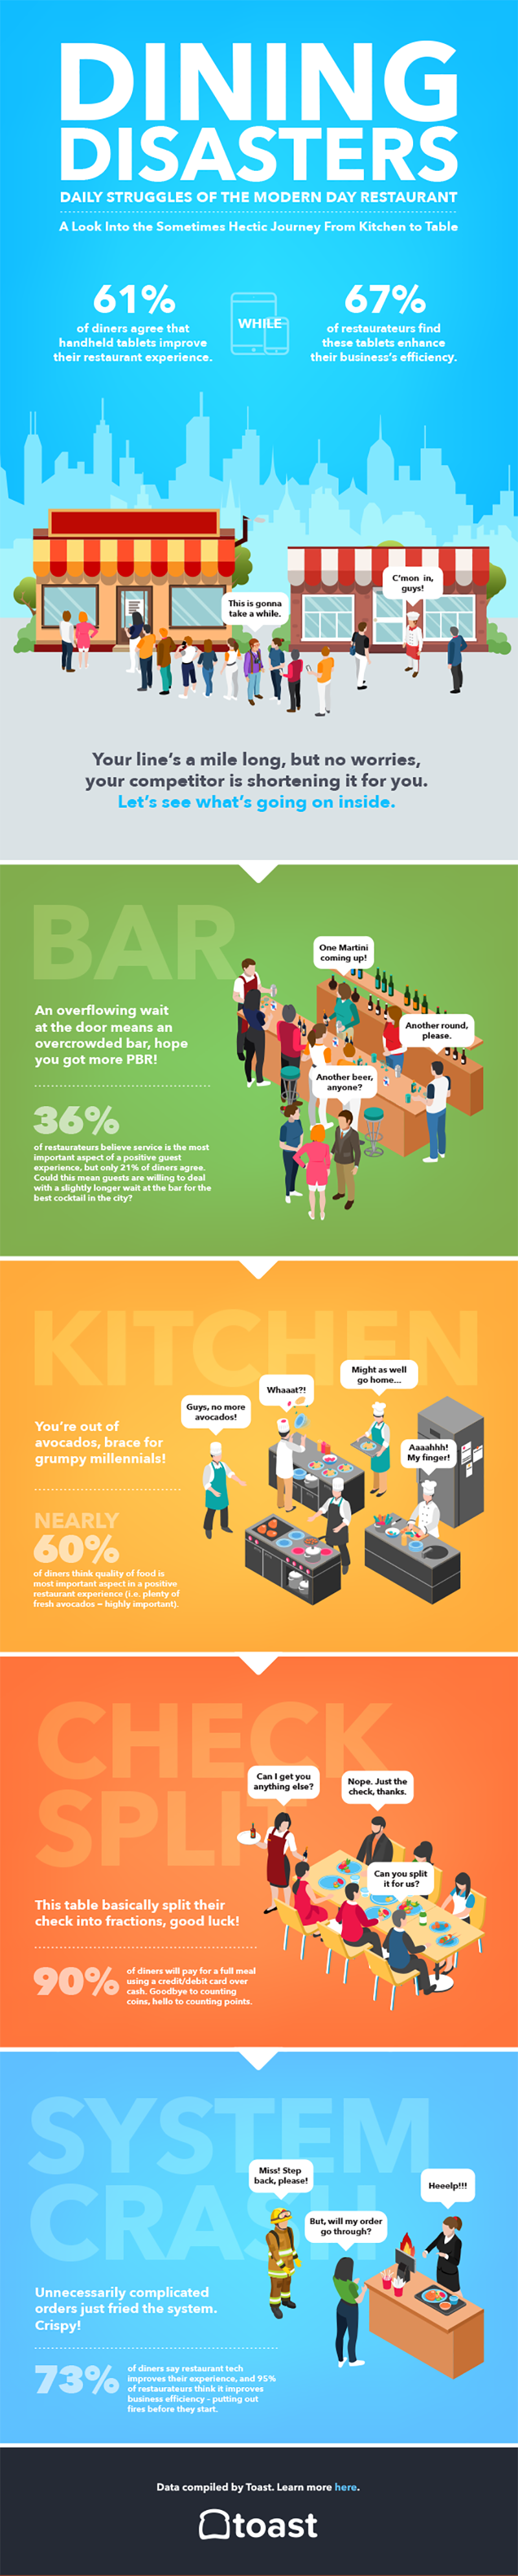 Restaurant Experience Statistics: 60% of Consumers Say Food Quality Most Important for Restaurants